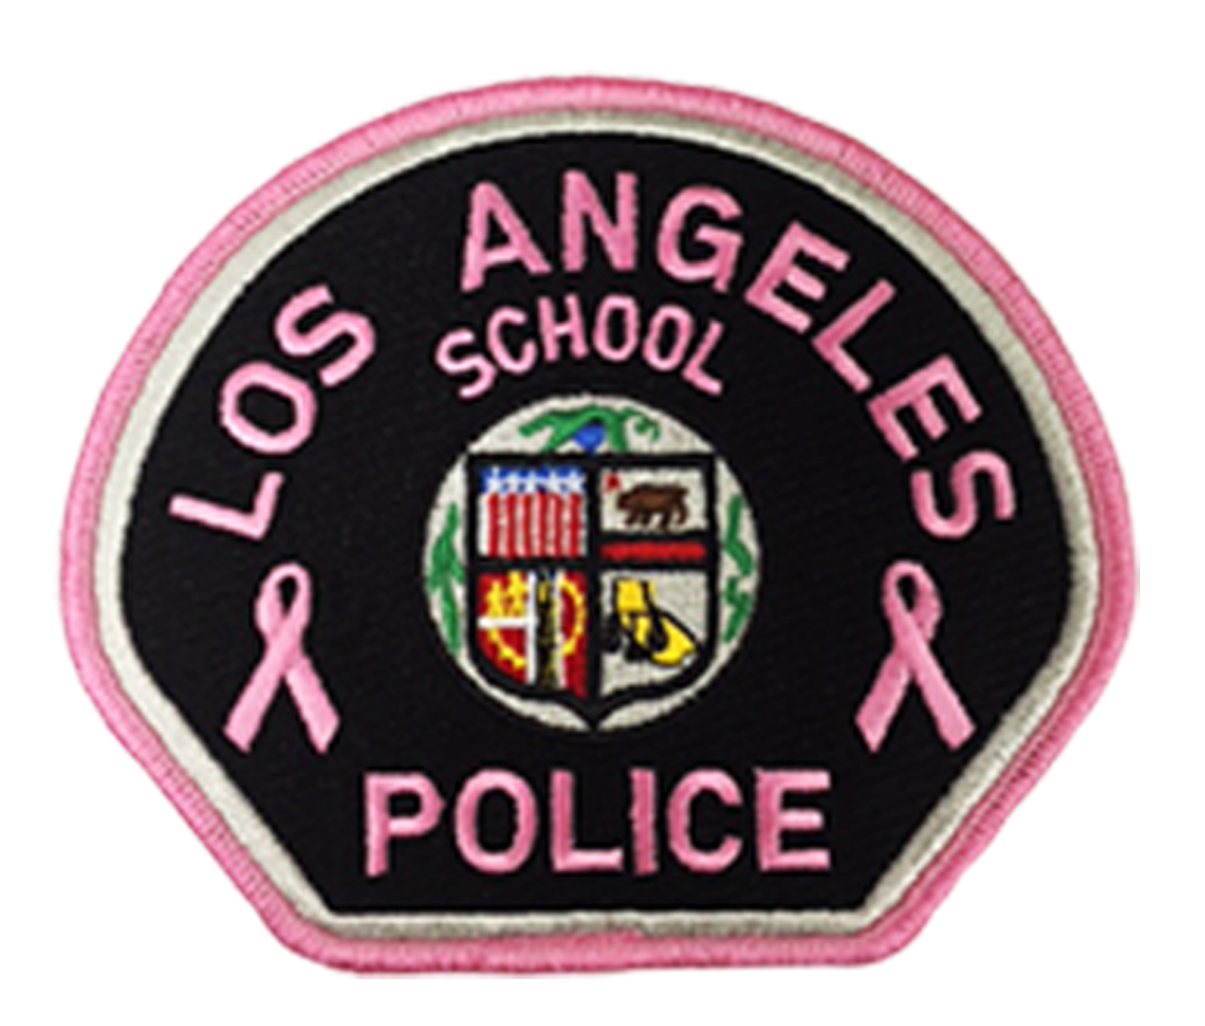 LASPD Pink Patch